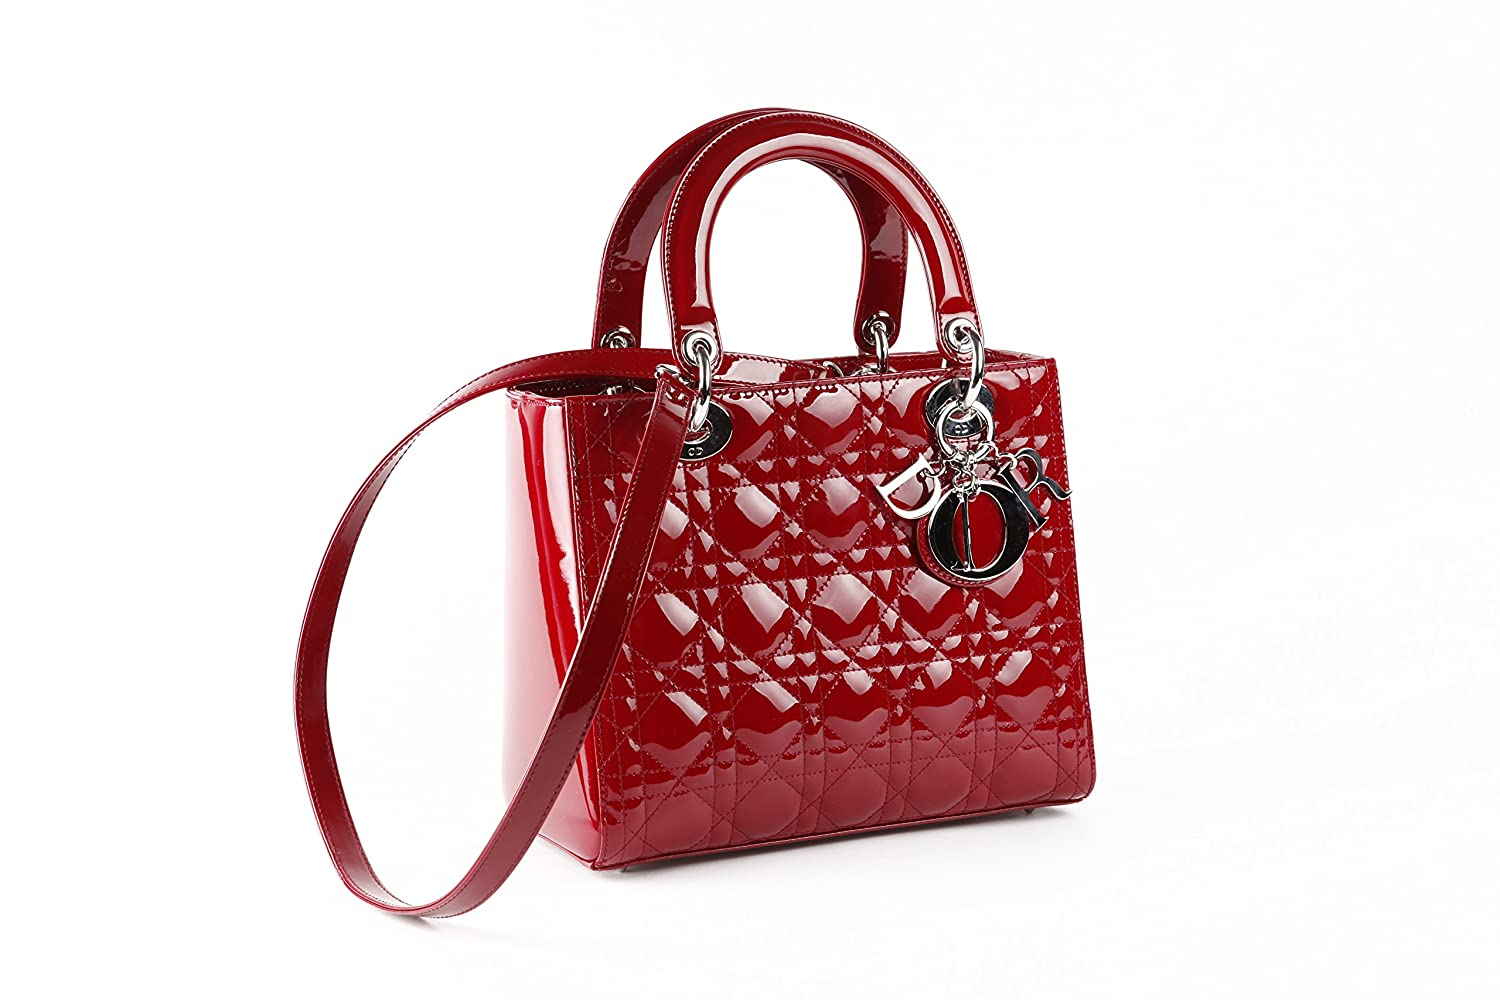 Christian Dior Lady Dior bag handbag in red 100% Lamb Leather   Amazon.co.uk  Shoes   Bags 6688a693d4